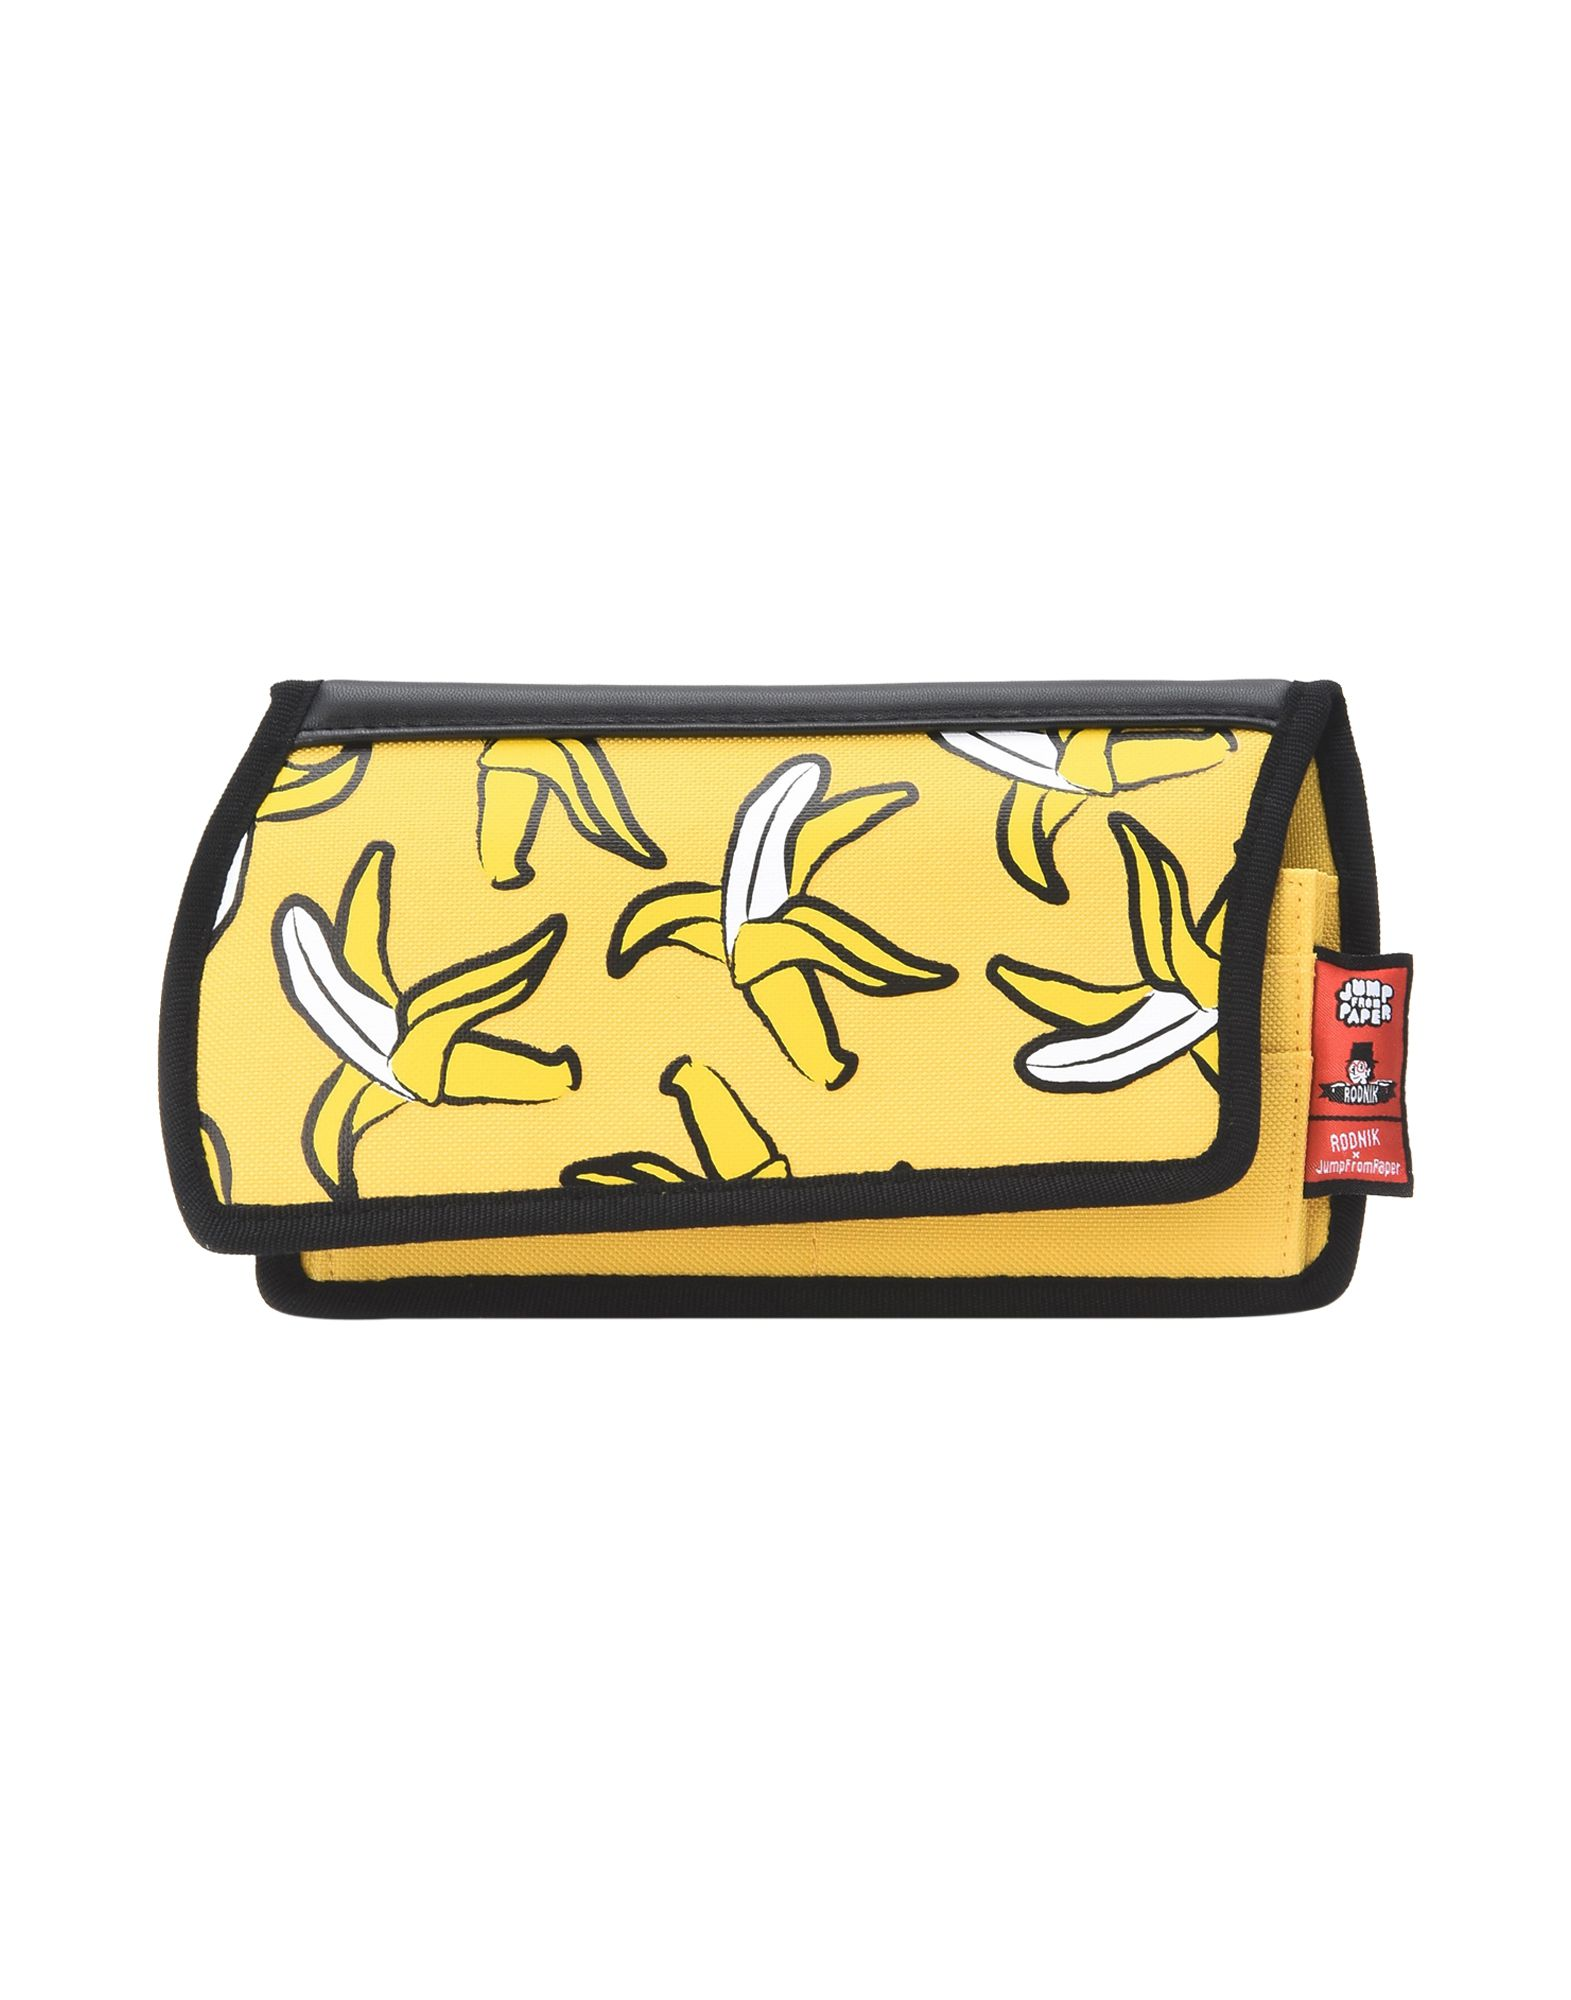 JUMPFROMPAPER &Reg; Wallets in Yellow